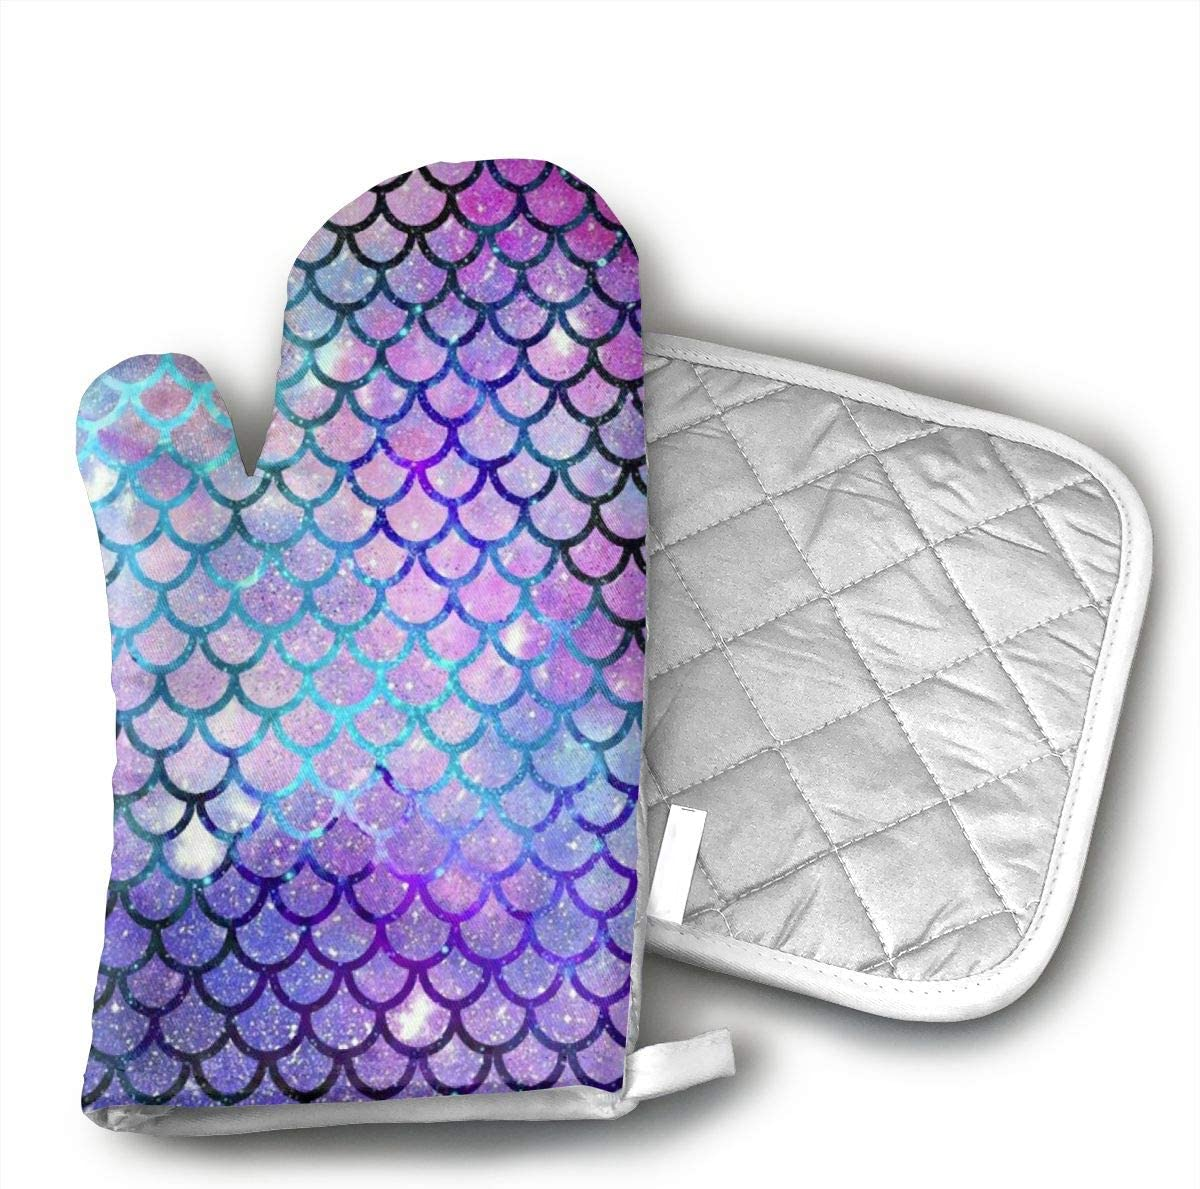 TMVFPYR Mermaid Scales Fashion Galaxy Pattern Oven Mitts, Non-Slip Silicone Oven Mitts, Extra Long Kitchen Mitts, Heat Resistant to 500Fahrenheit Degrees Kitchen Oven Gloves